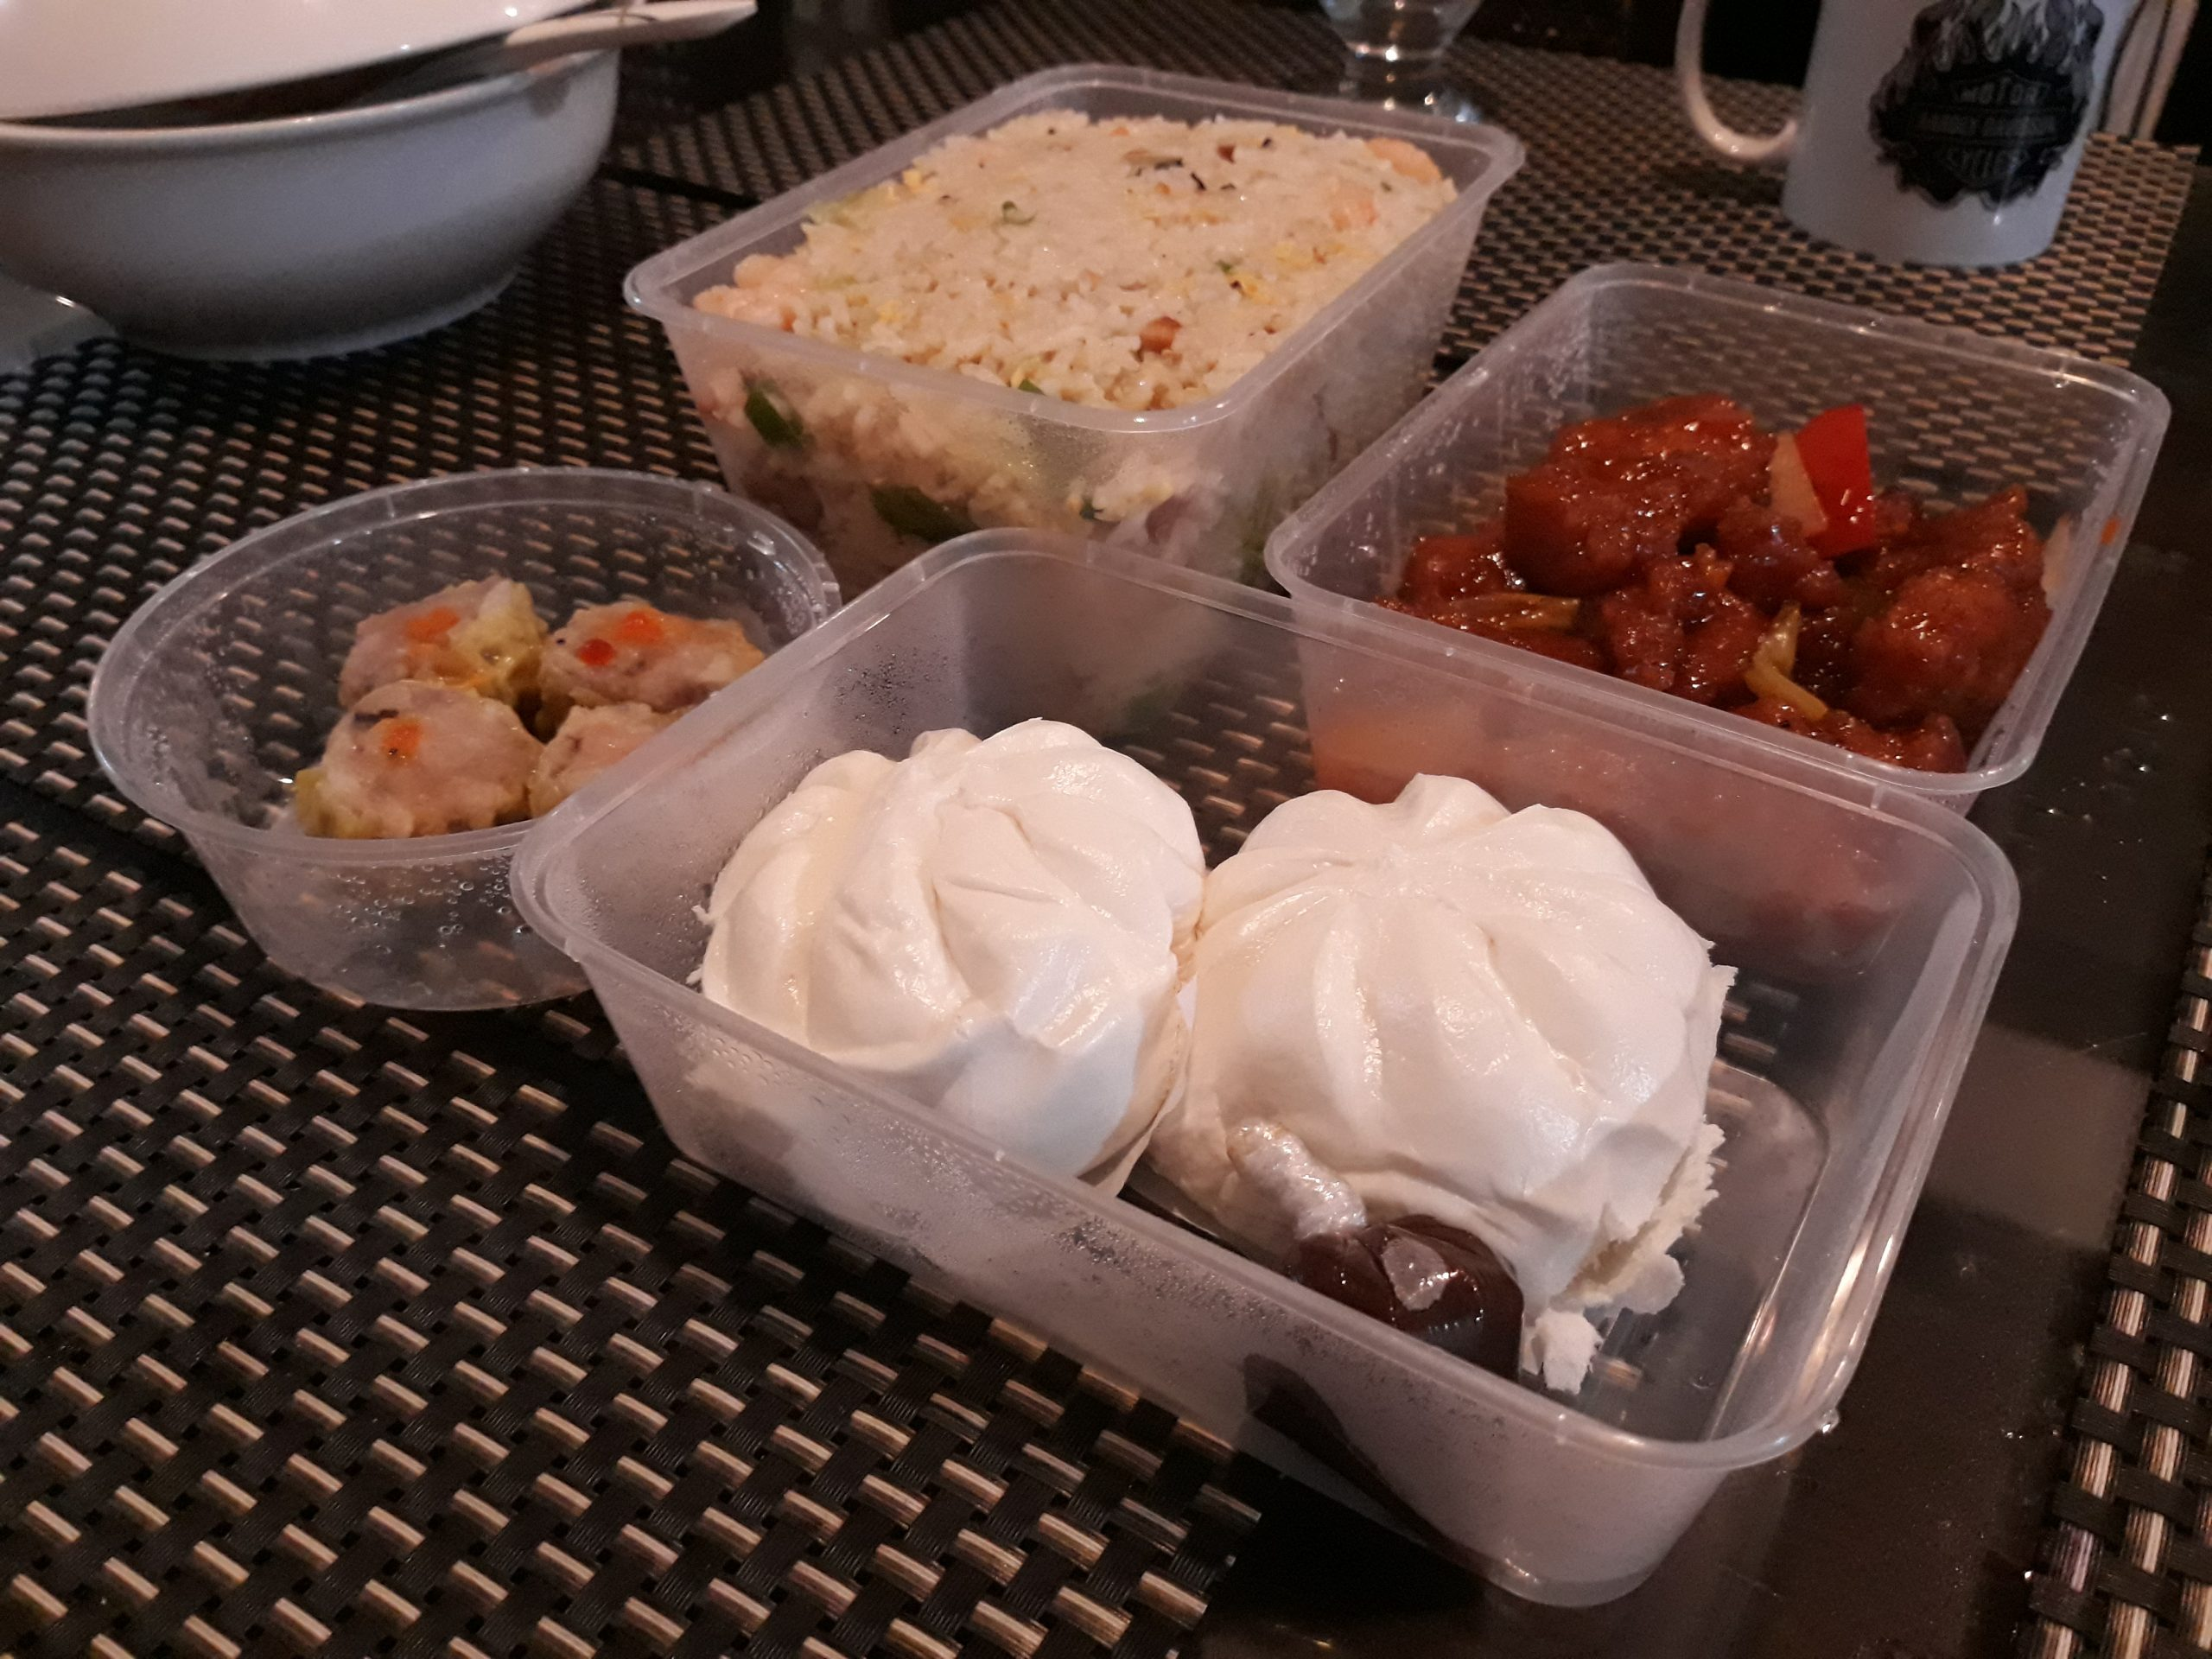 Yang chow, sweet & sour pork, siopao, and siomai in plastic containers.